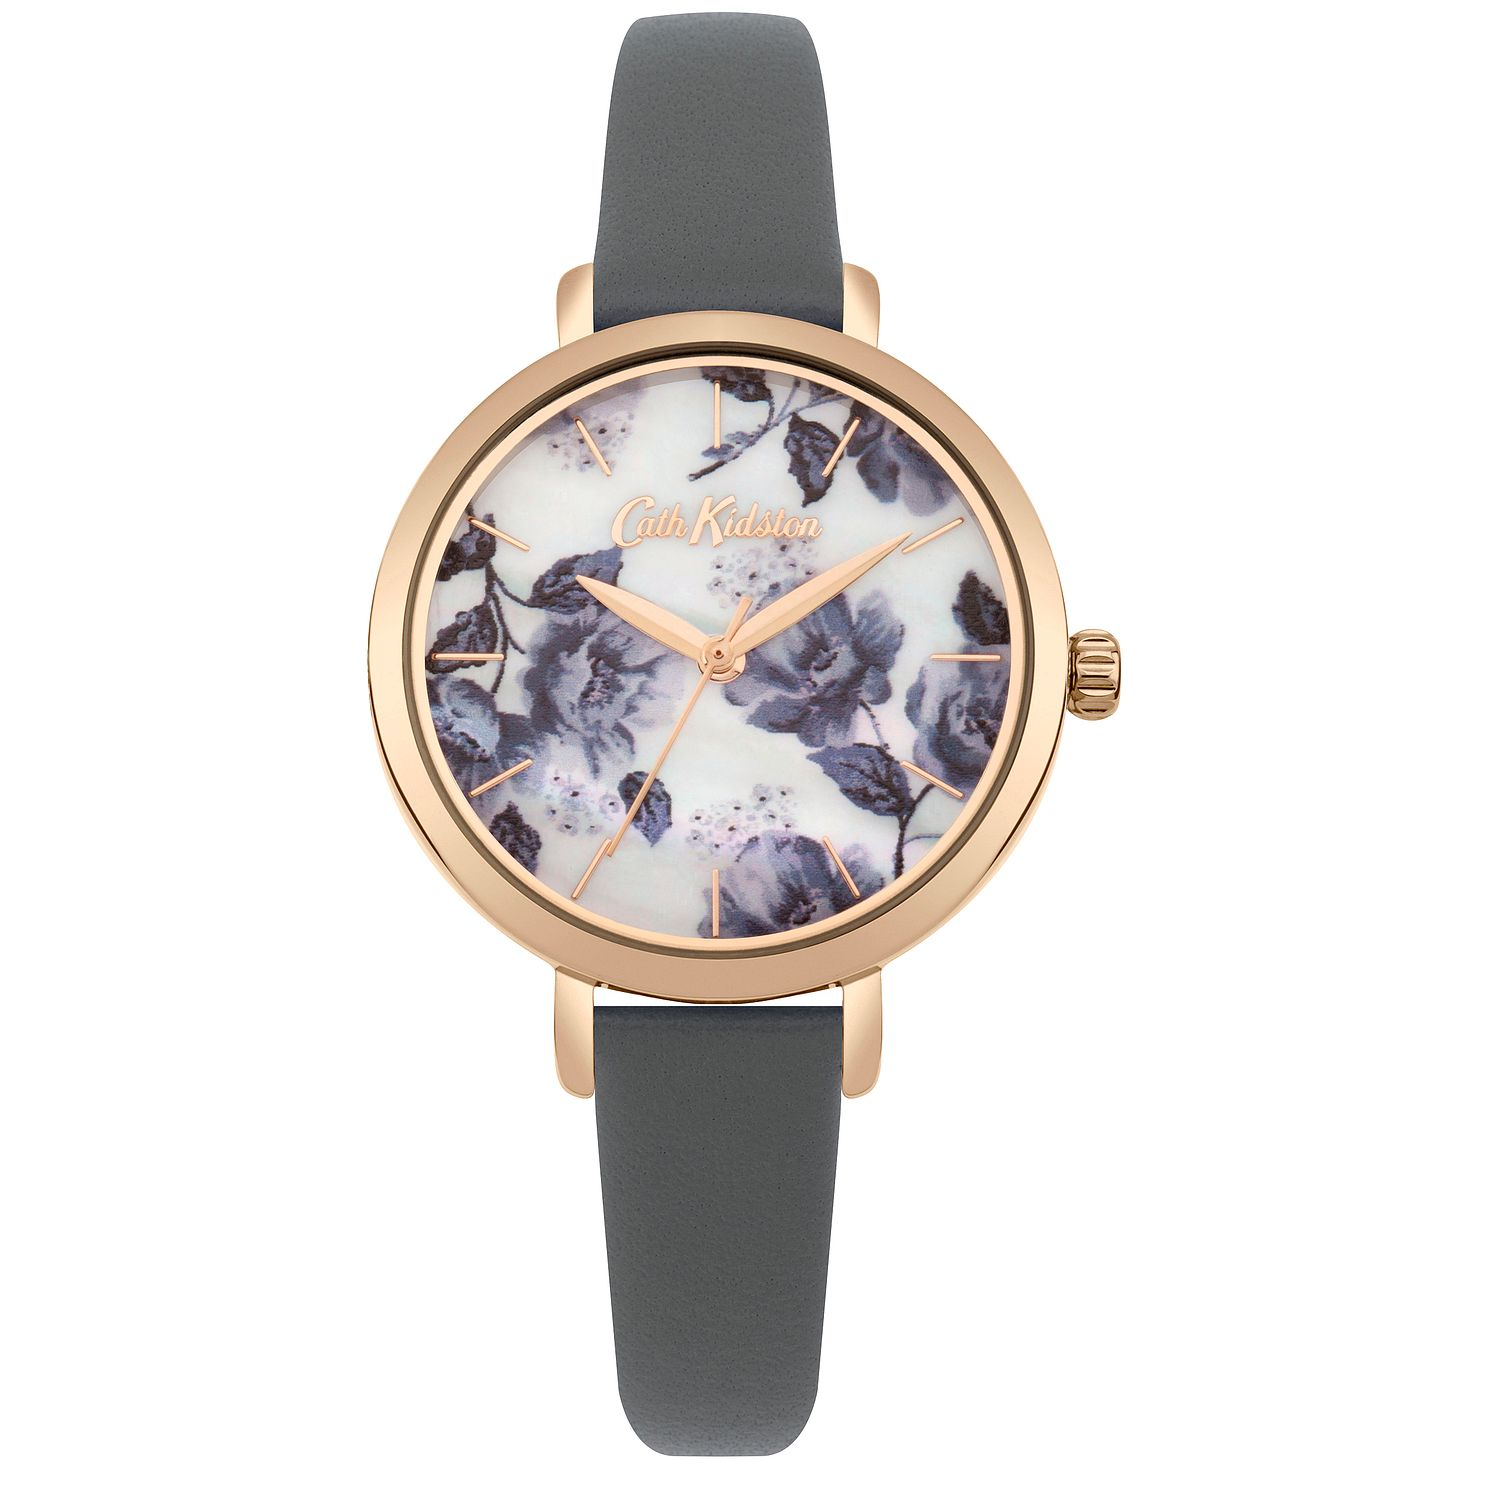 Cath Kidston Grey Strap Rose Gold Case Watch - Product number 9789979